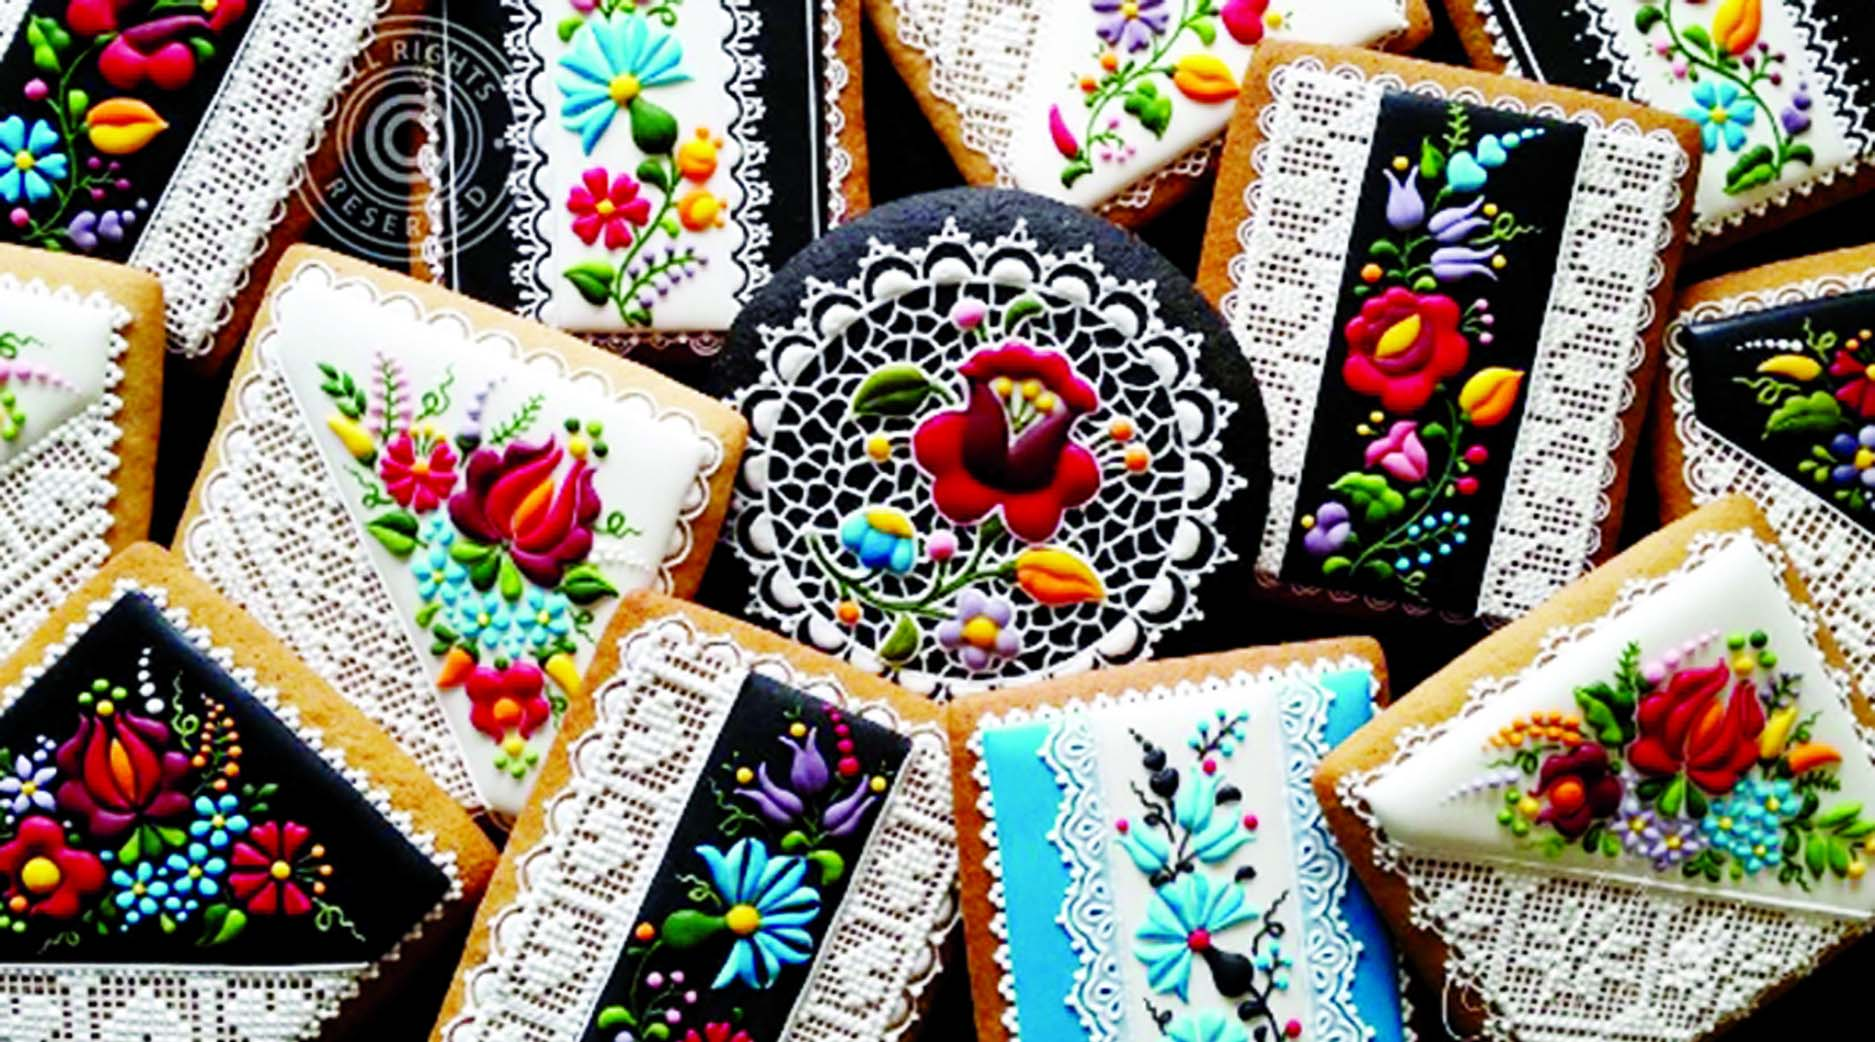 Food art: Embroidery is for clothes  not cookies, or is it?